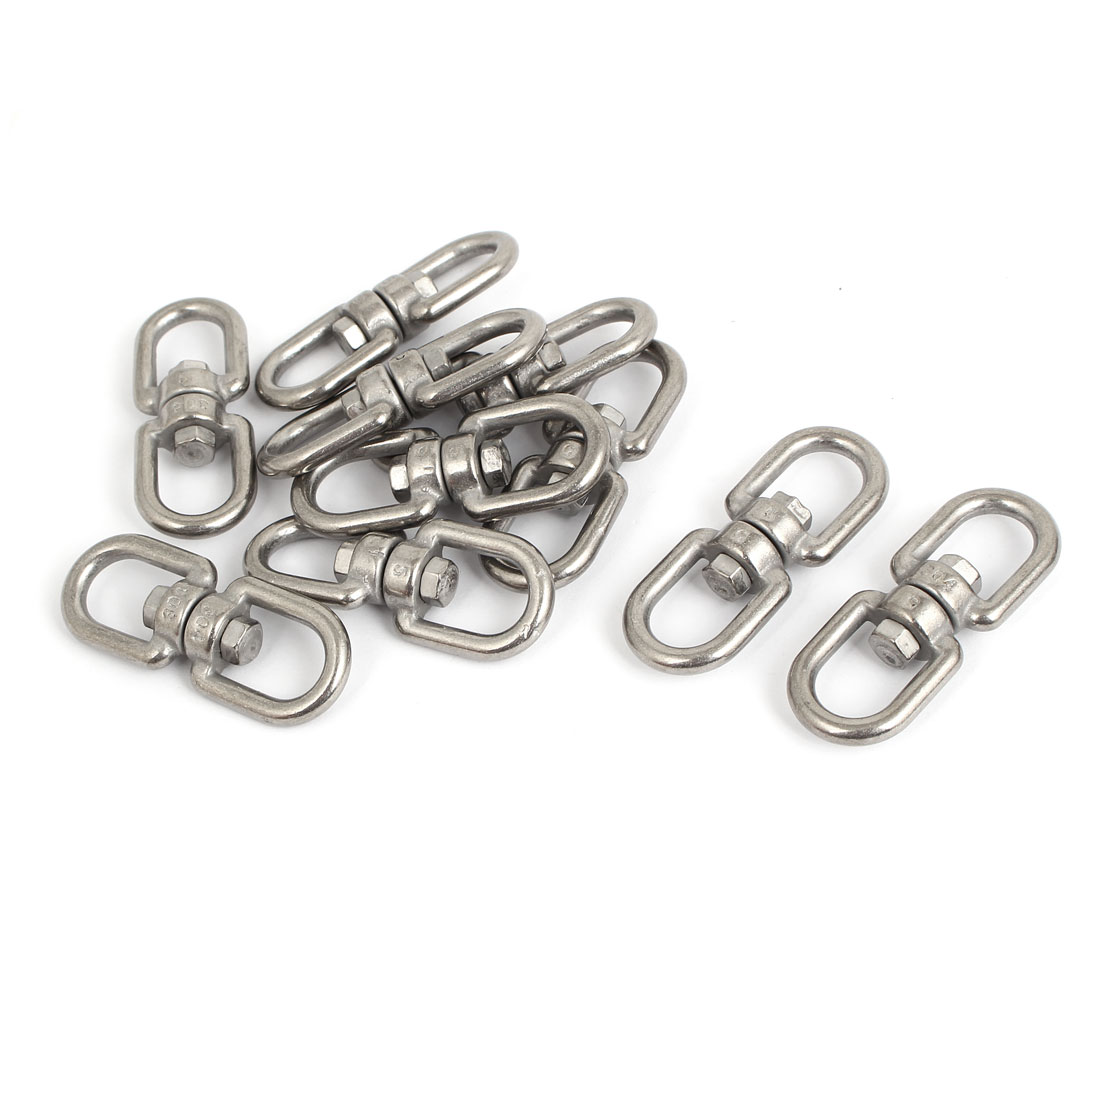 5mm Thickness 304 Stainless Steel Double D Shape Eye to Eye Swivel Connectors 10 Pcs